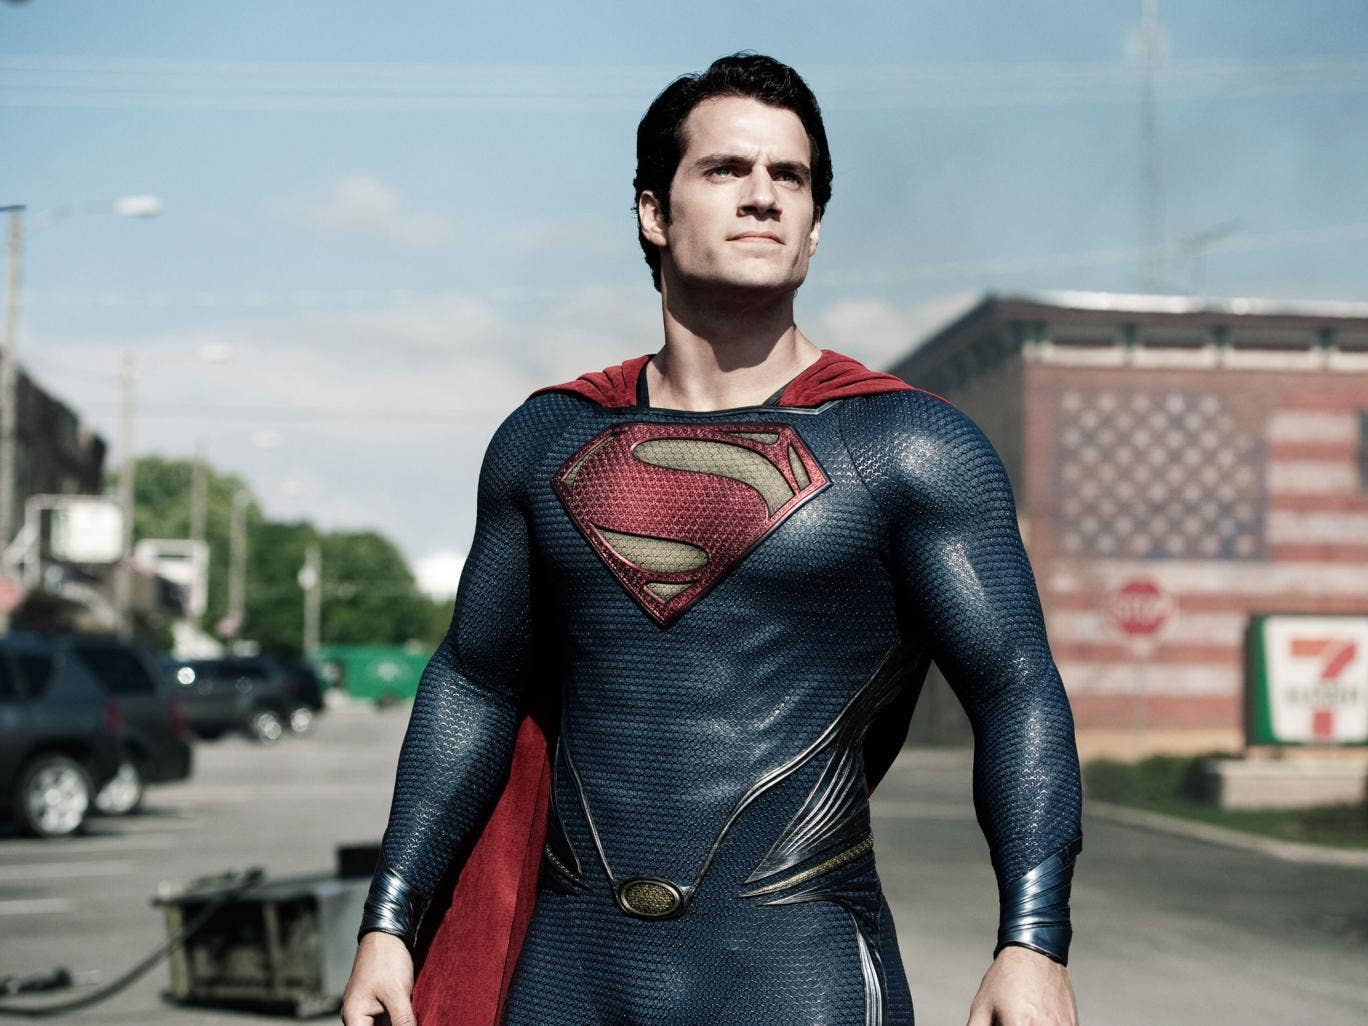 Krypton factor: Henry Cavill is the latest Brit actor to nab a big American superhero role